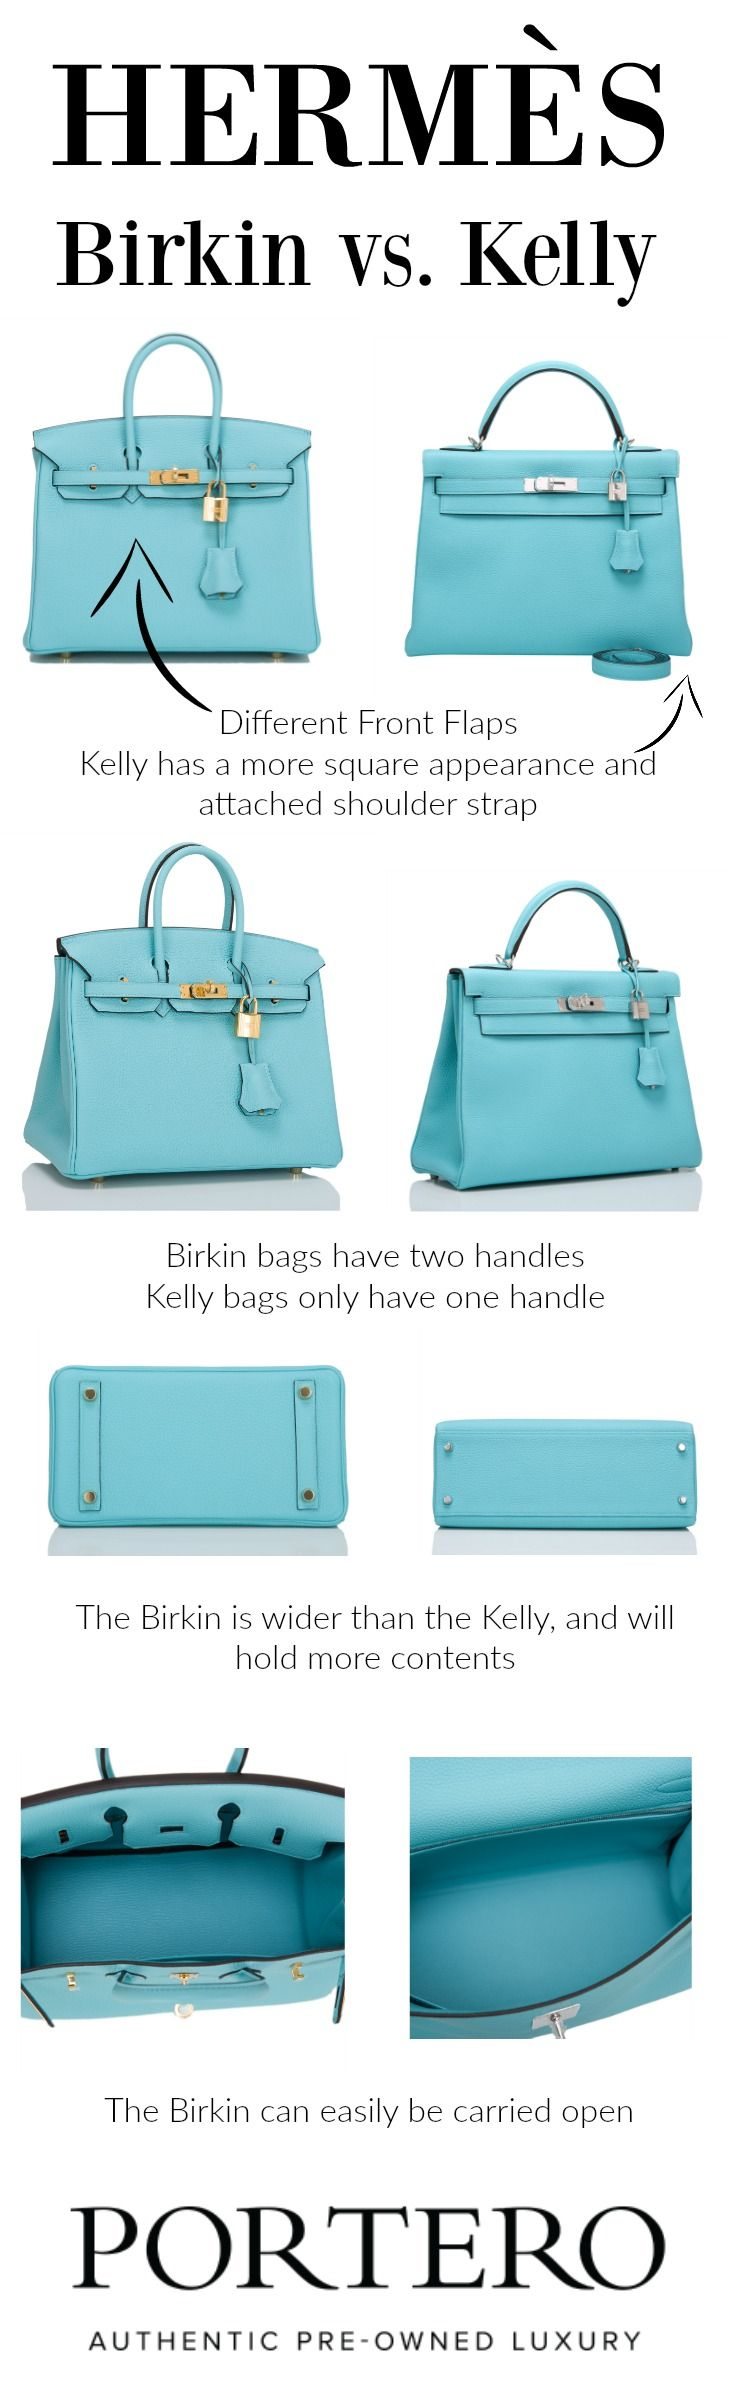 9cece01cc984 Difference between Birkin and Kelly www.PORTERO.com. Hermes Designer  Authentication Services for Handbags ...